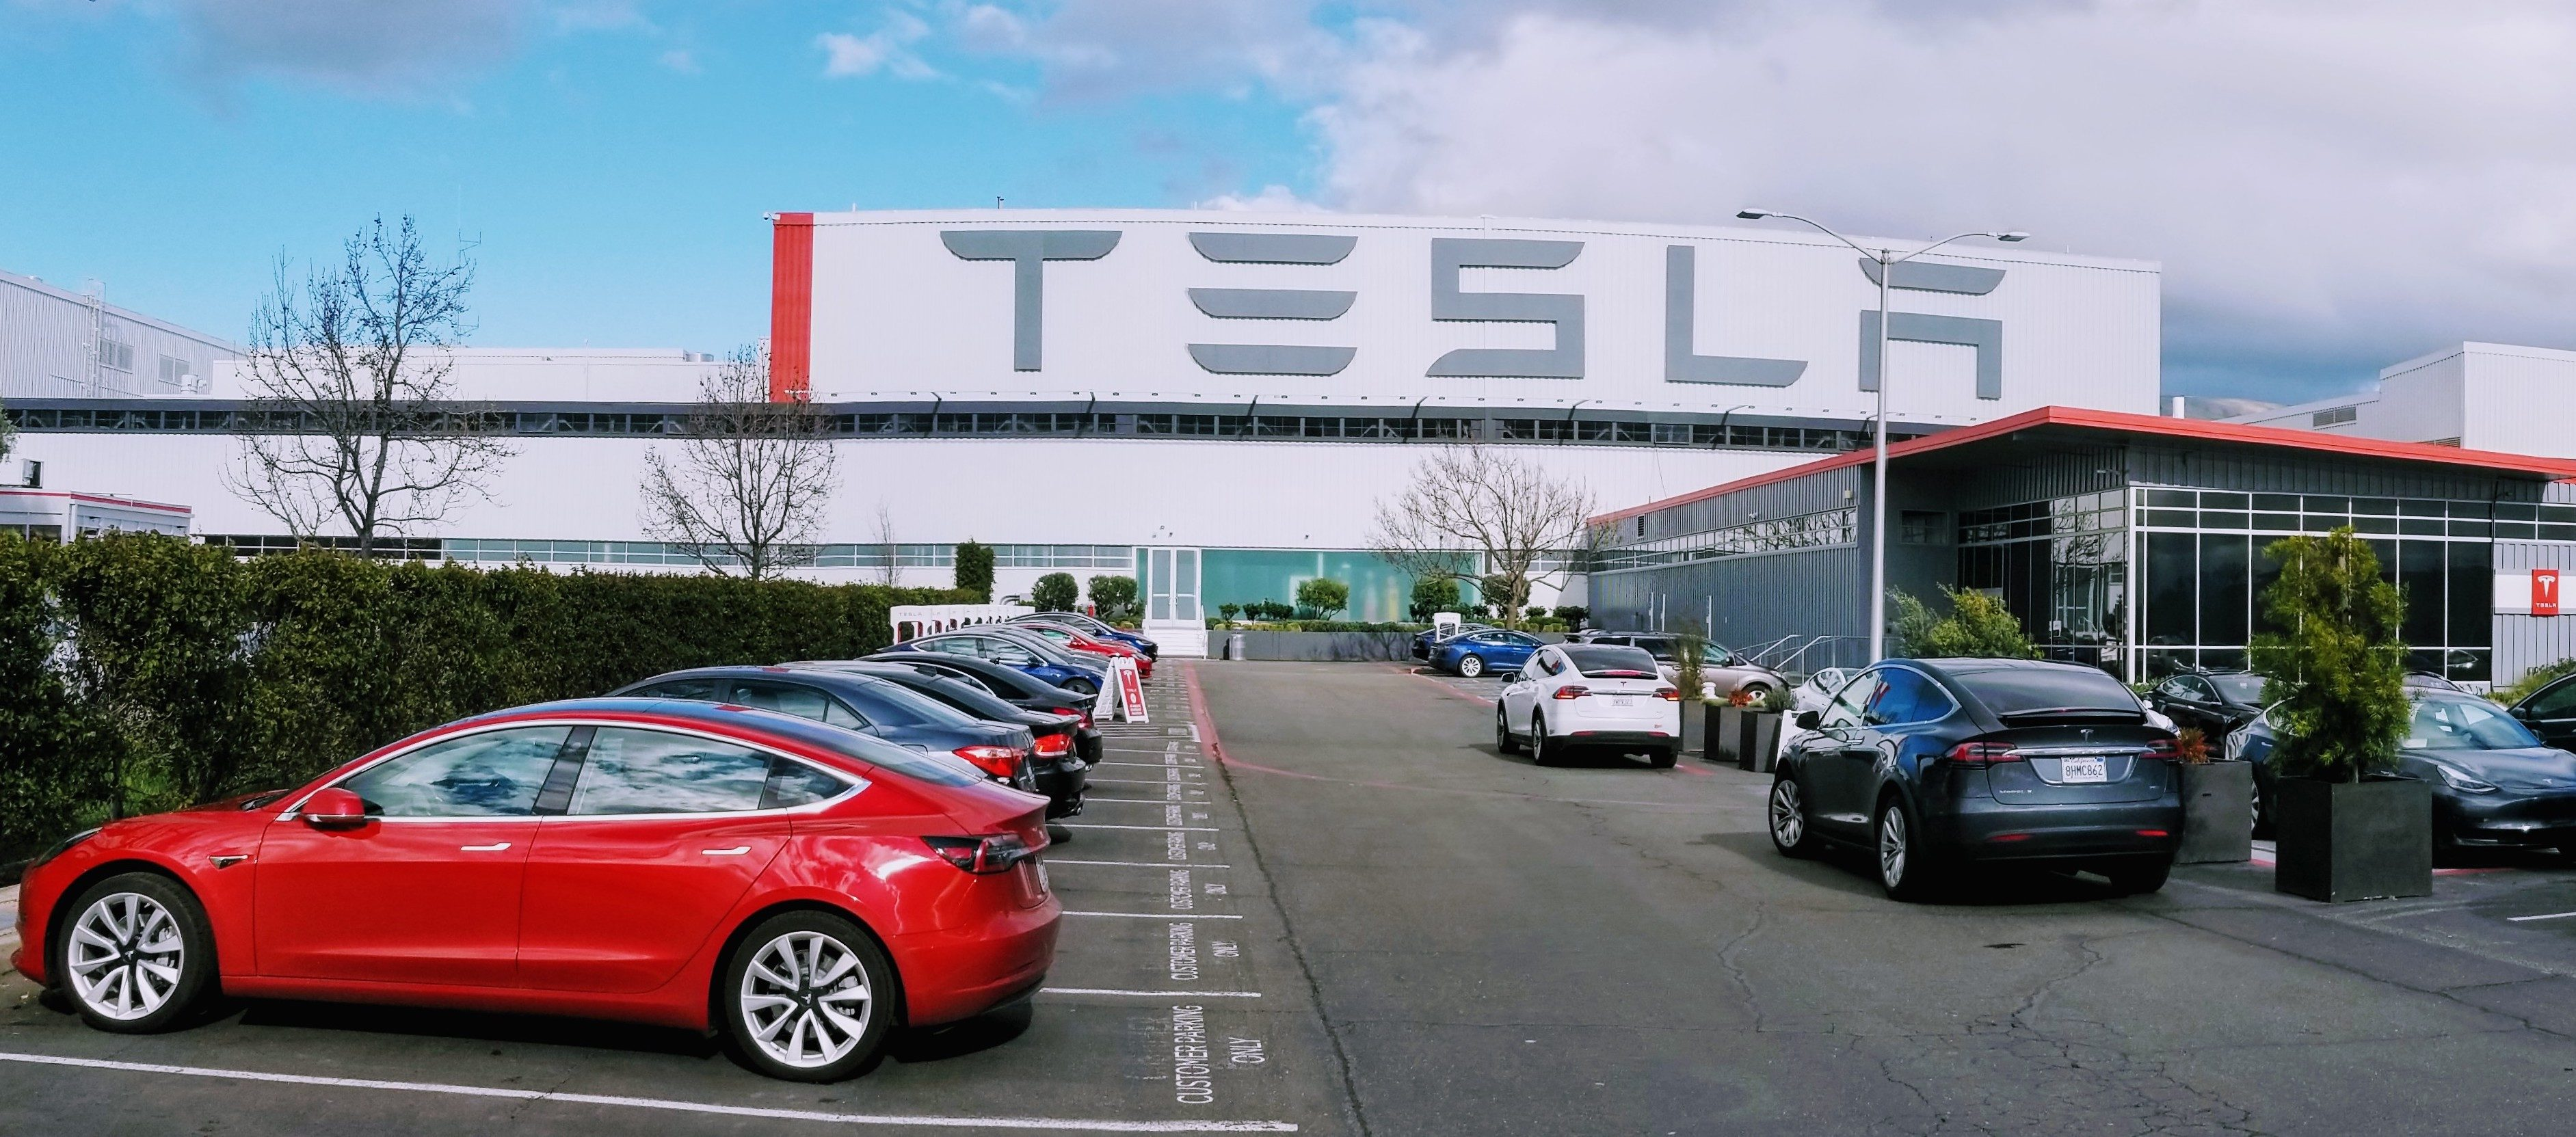 tesla-fremont-factory-wide-store-superchargers-1-e1553218465825.jpg